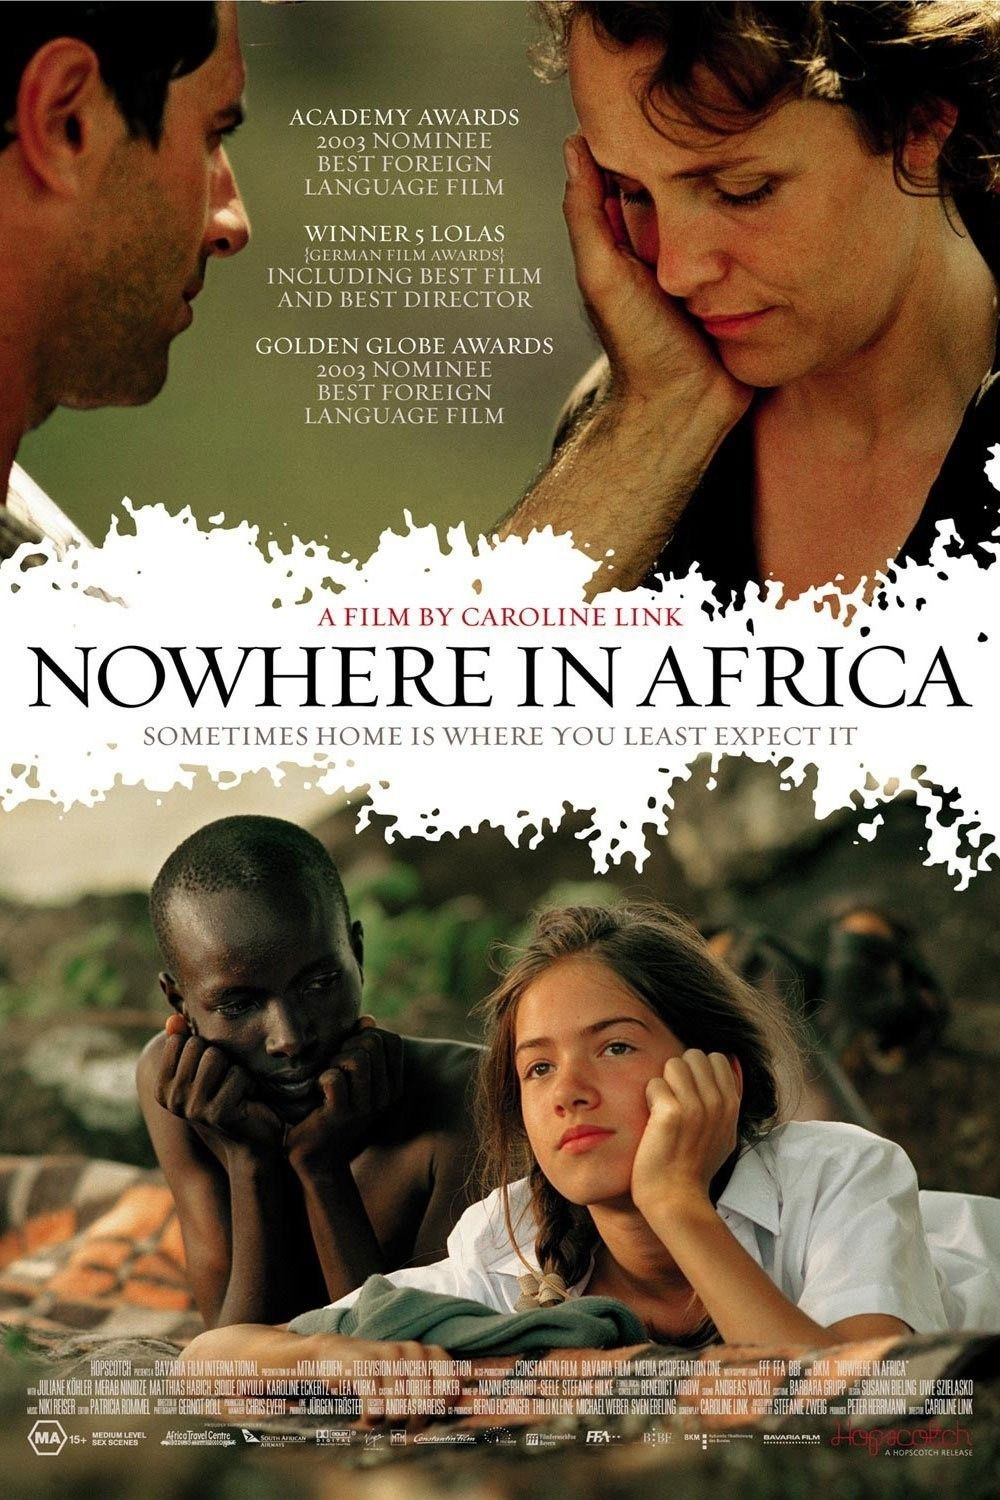 Nowhere In Africa 2001 Travel Movies Movies To Watch Good Movies